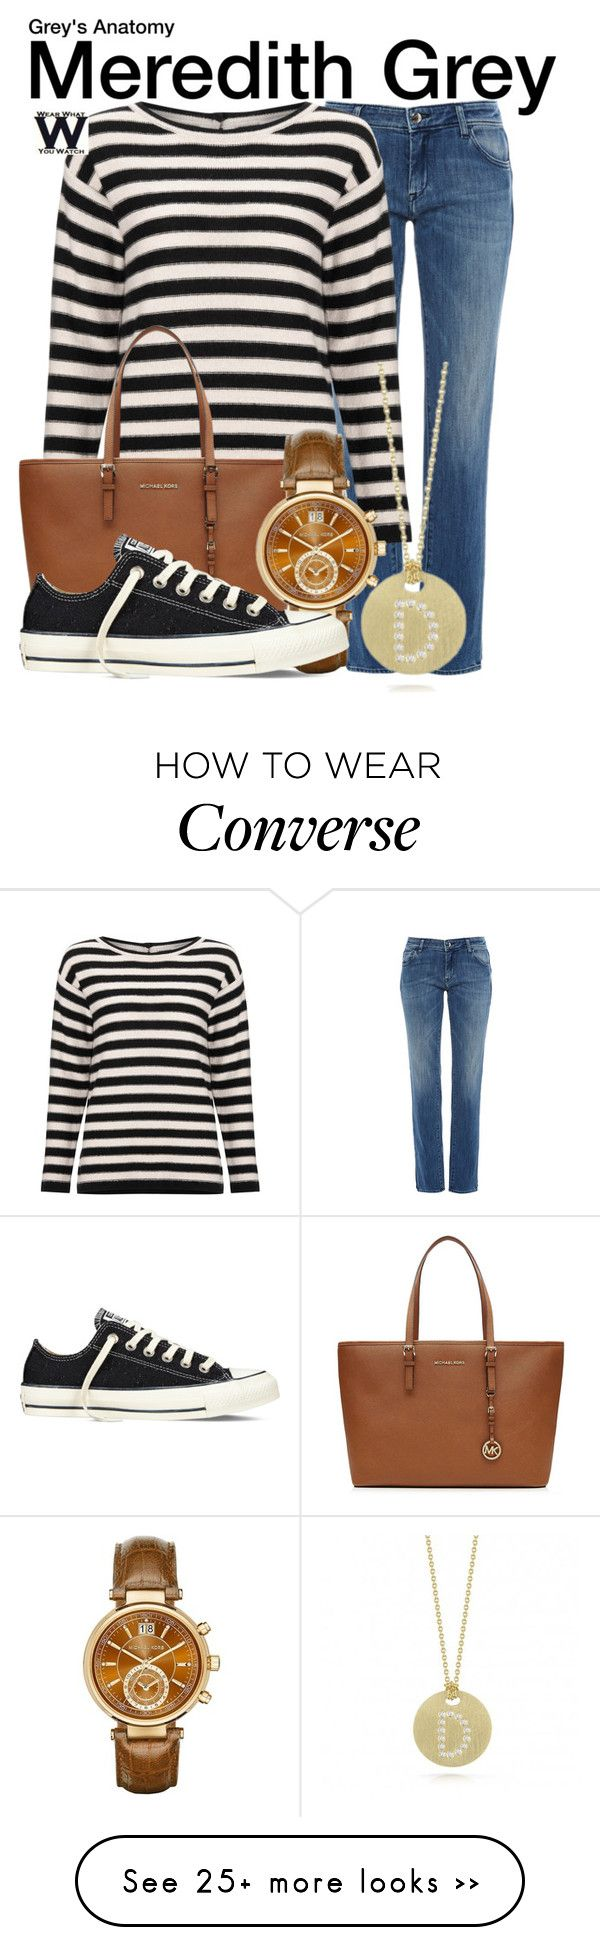 """""""Grey's Anatomy"""" by wearwhatyouwatch on Polyvore featuring The Seafarer, Marella, MICHAEL Michael Kors, Michael Kors, Converse, Roberto Coin, television and wearwhatyouwatch"""